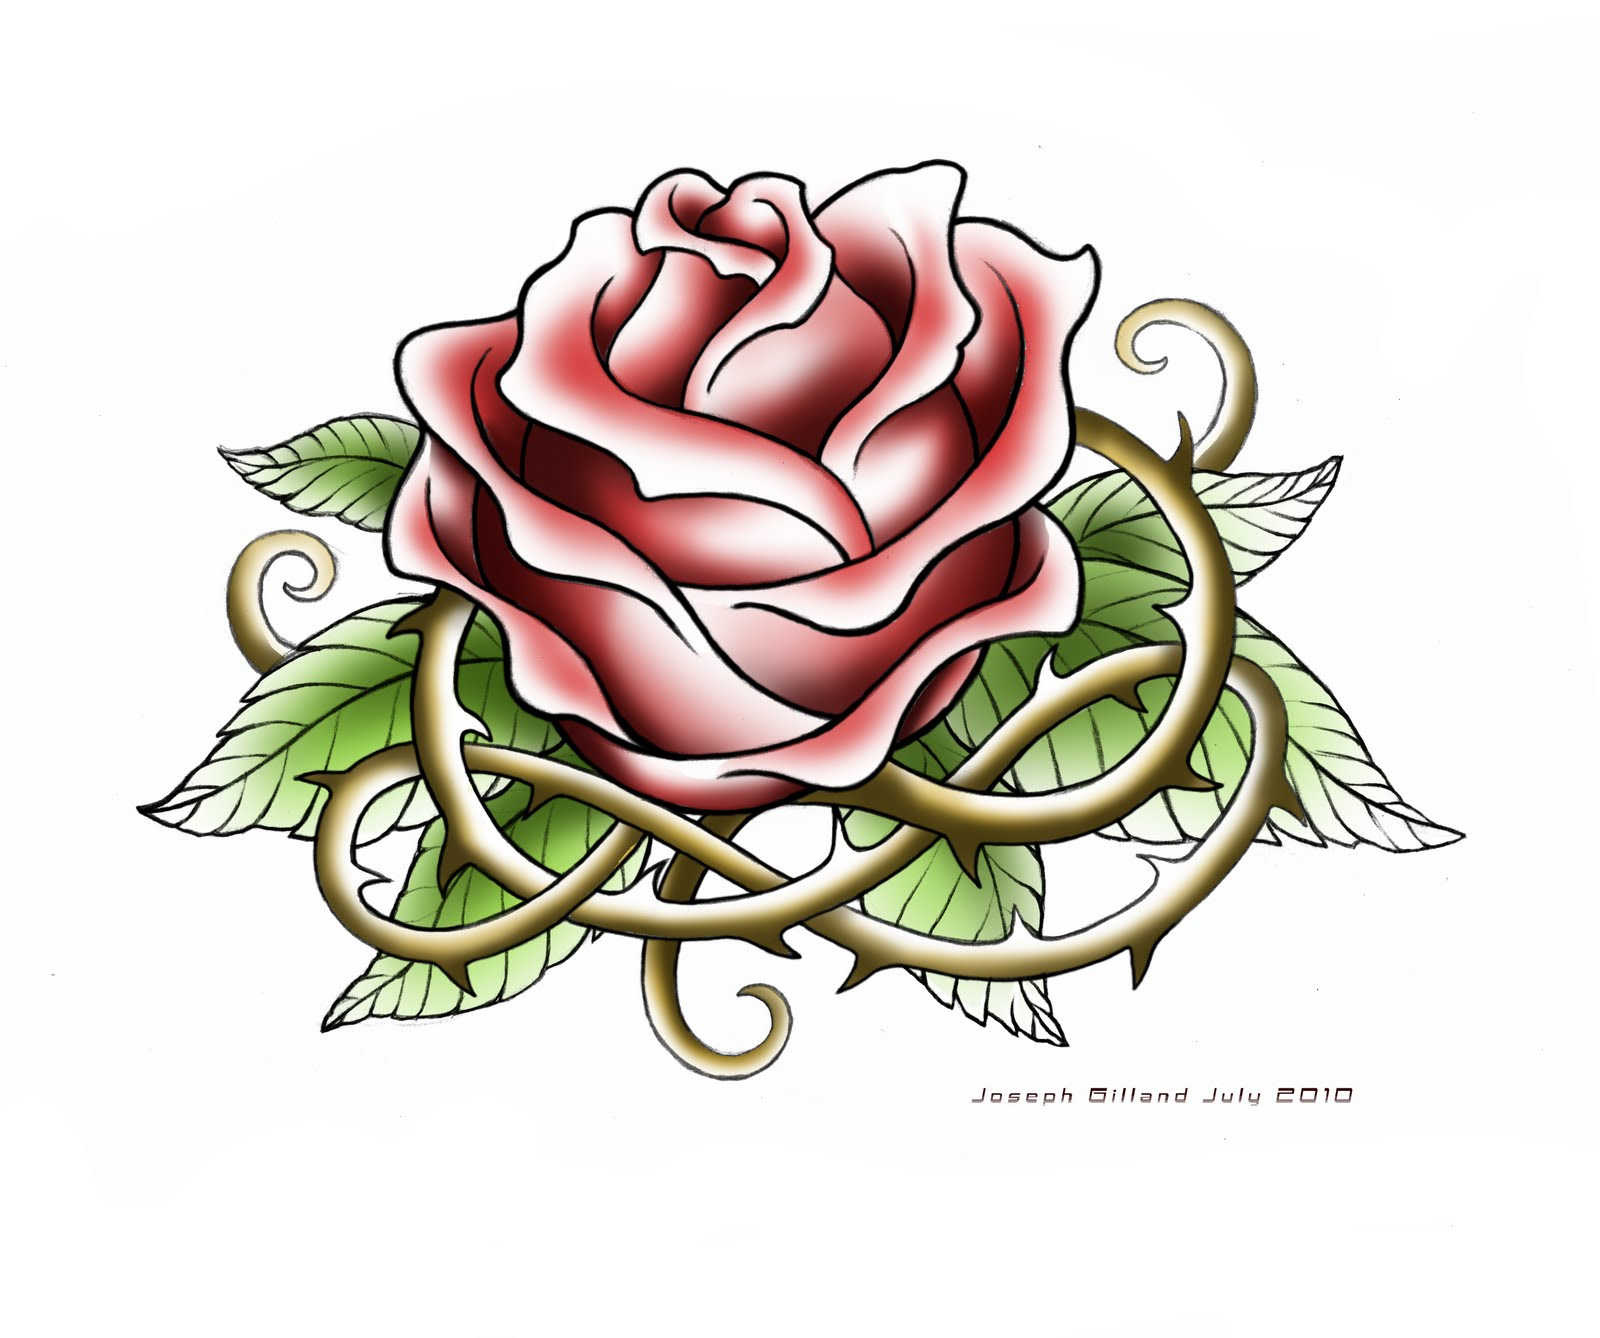 Tattoo Designs Rose: Rose Tattoo Design